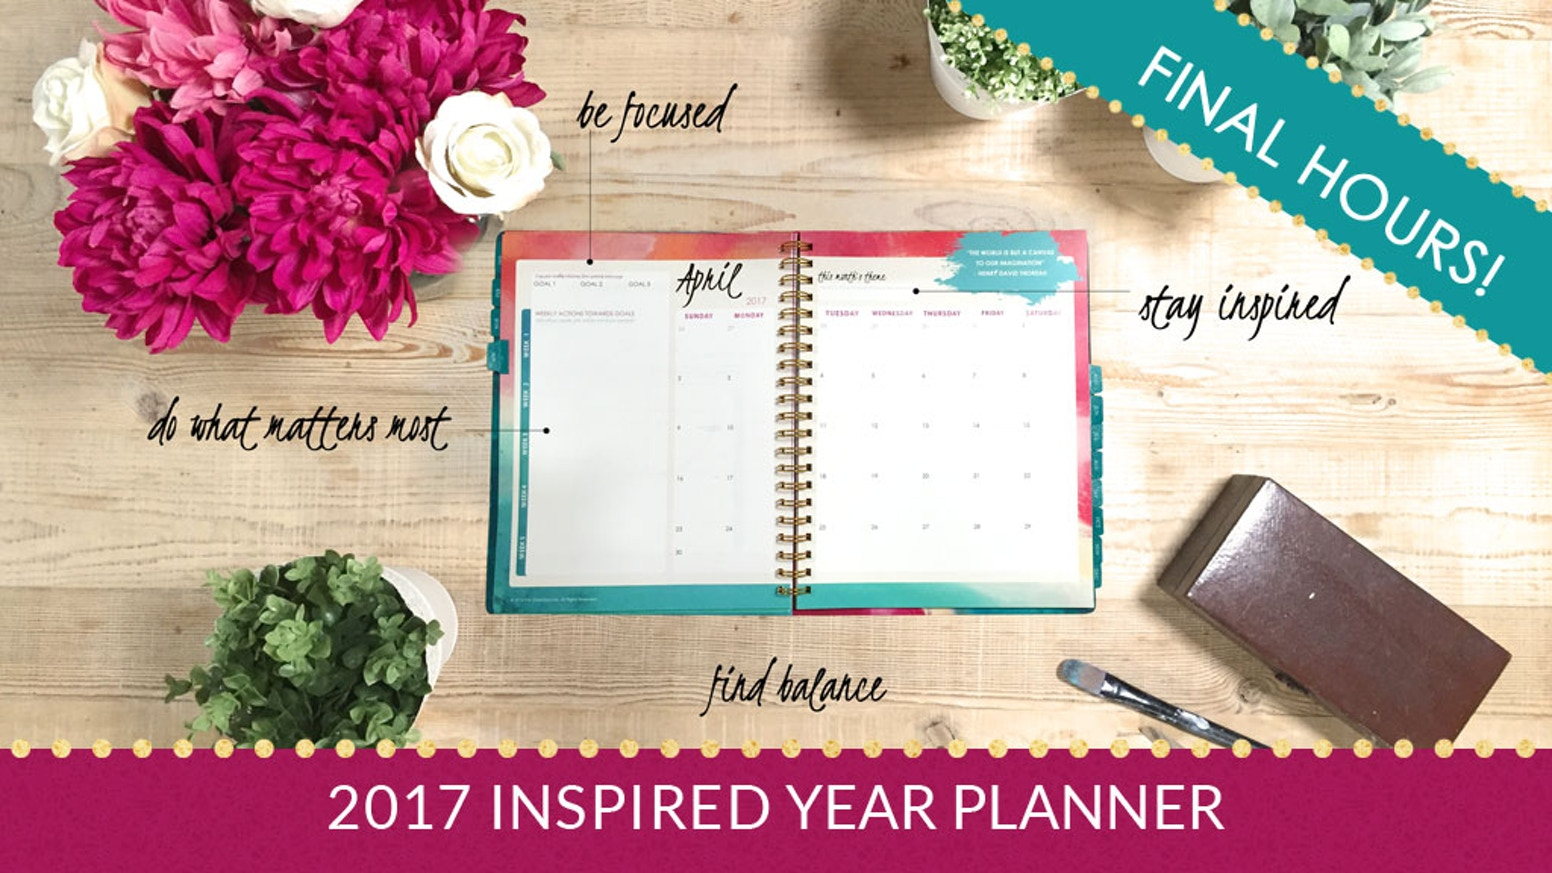 Kickstarter Calendar Planner : Inspired year planner goal setting for creative